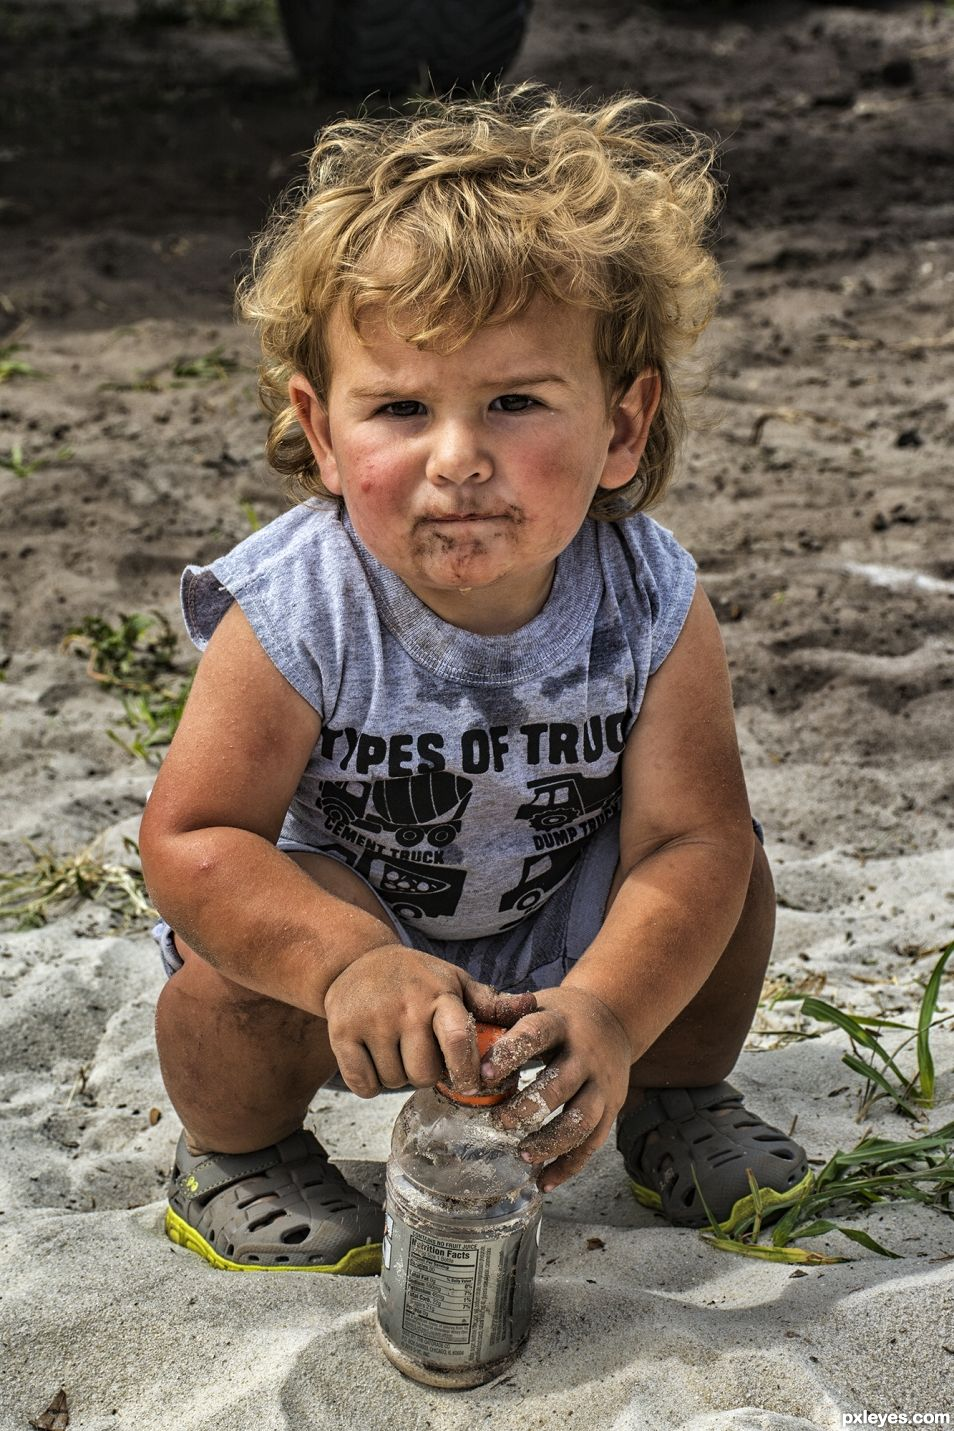 Cole playing in the dirt